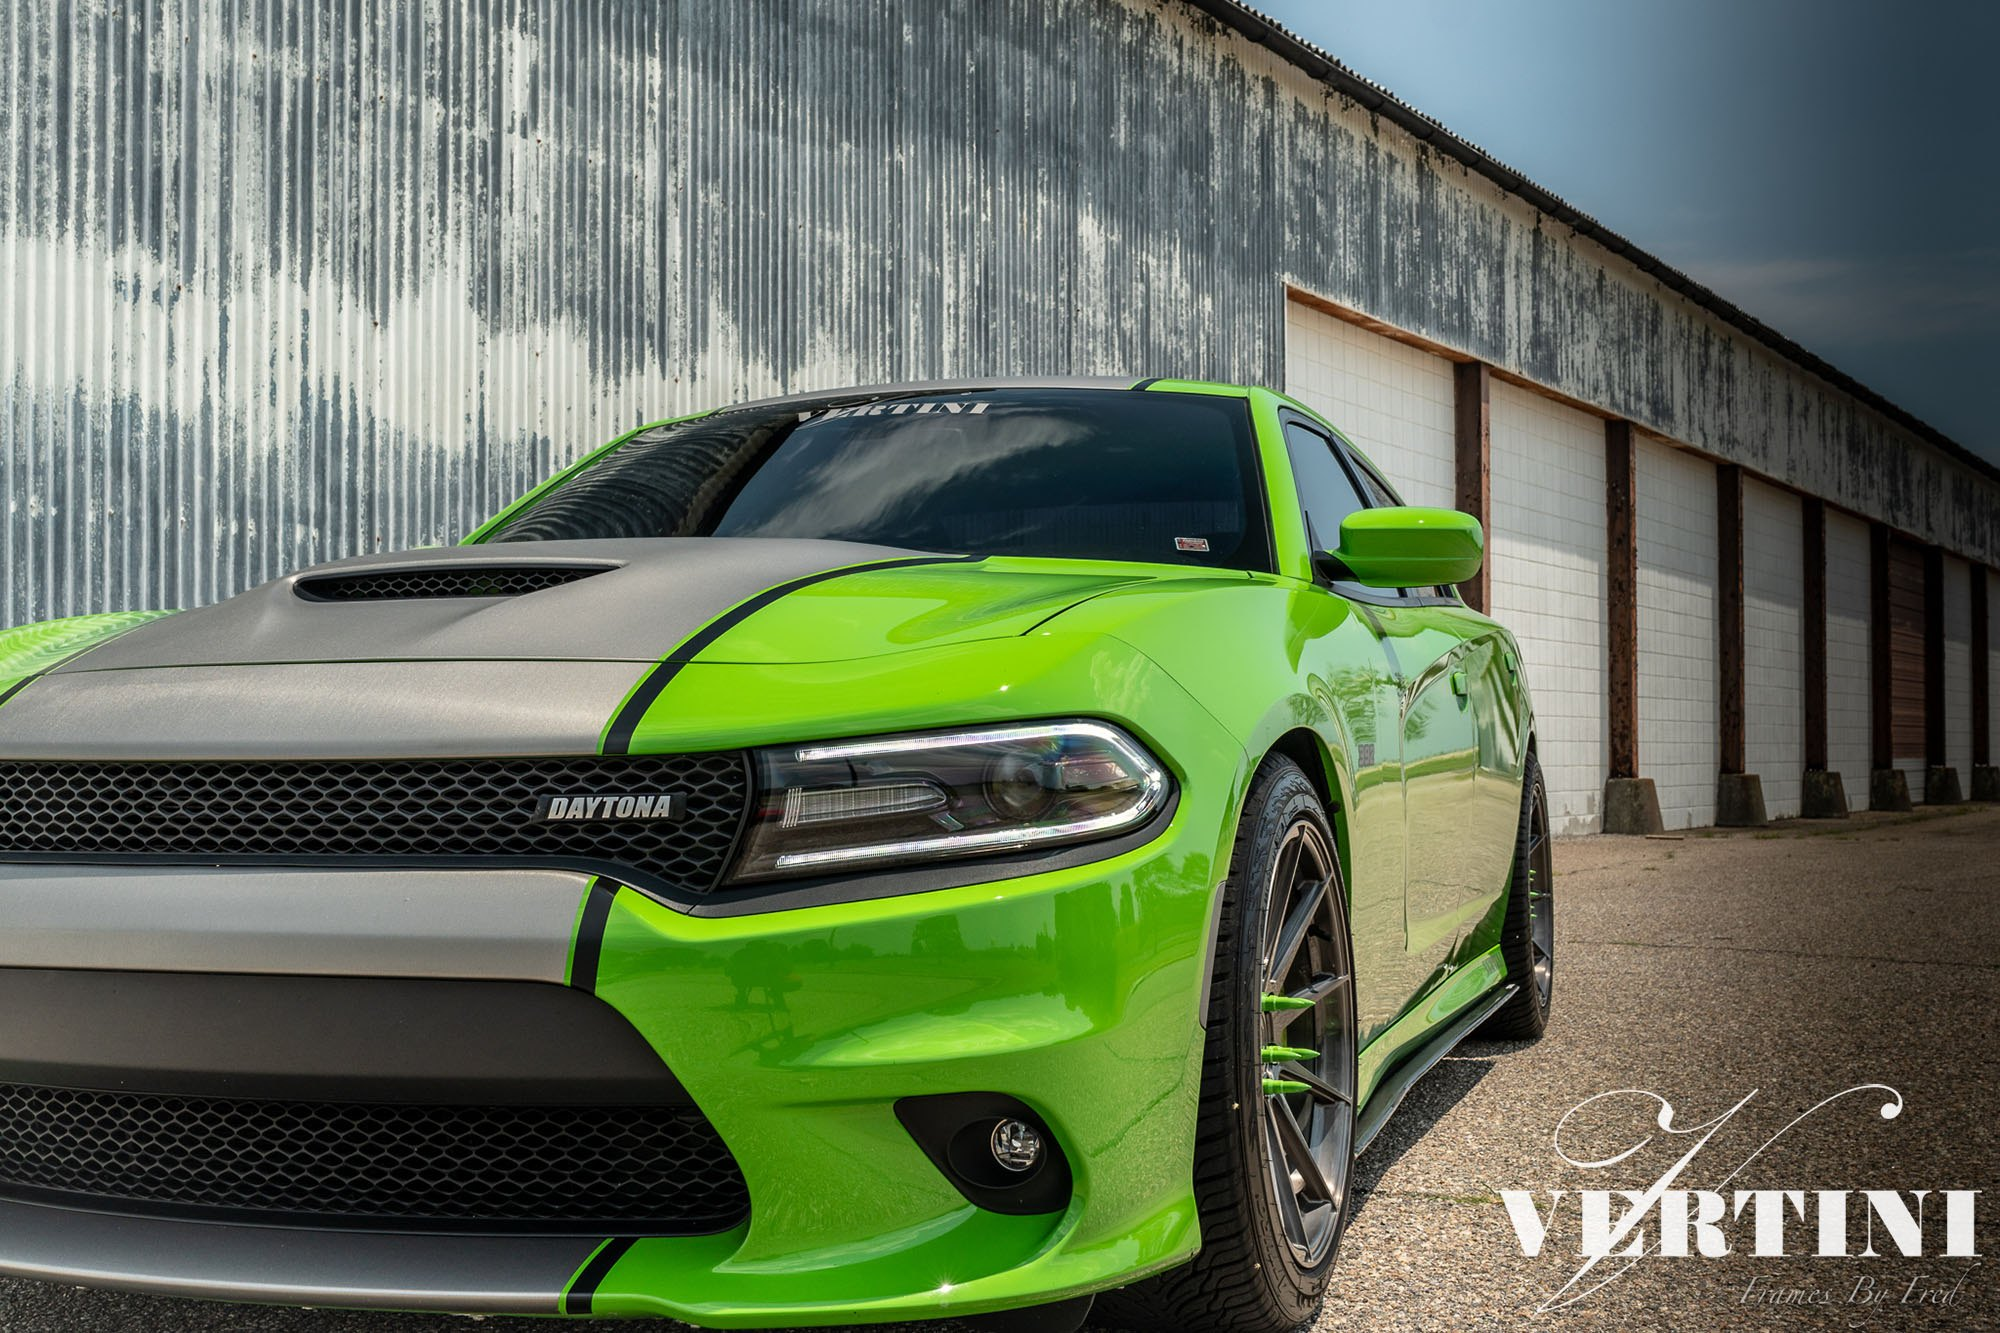 Sporty Looking Dodge Charger Boasting Custom Green And Black Paint Job Carid Com Gallery